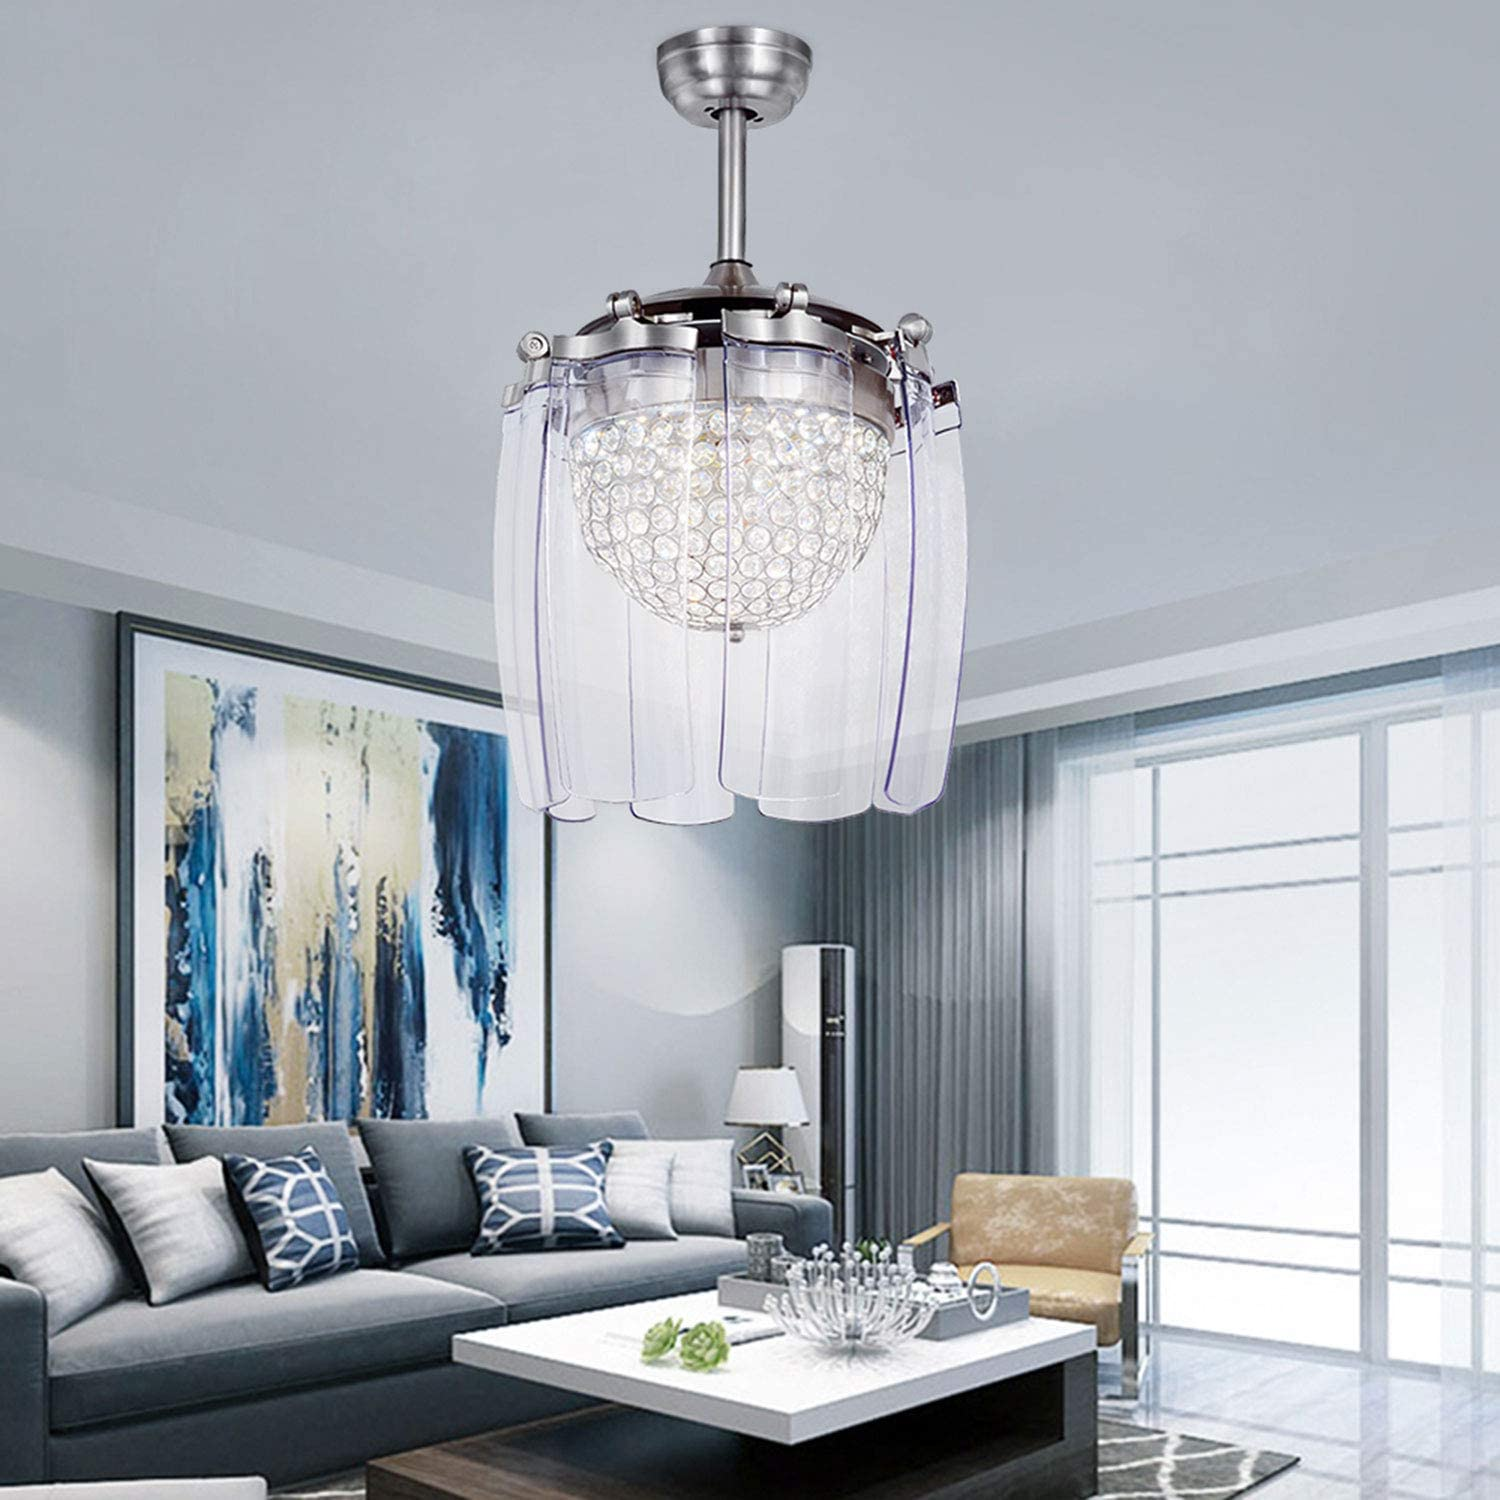 Tropicalfan Crystal Retractable Ceiling Fan With Remote Control